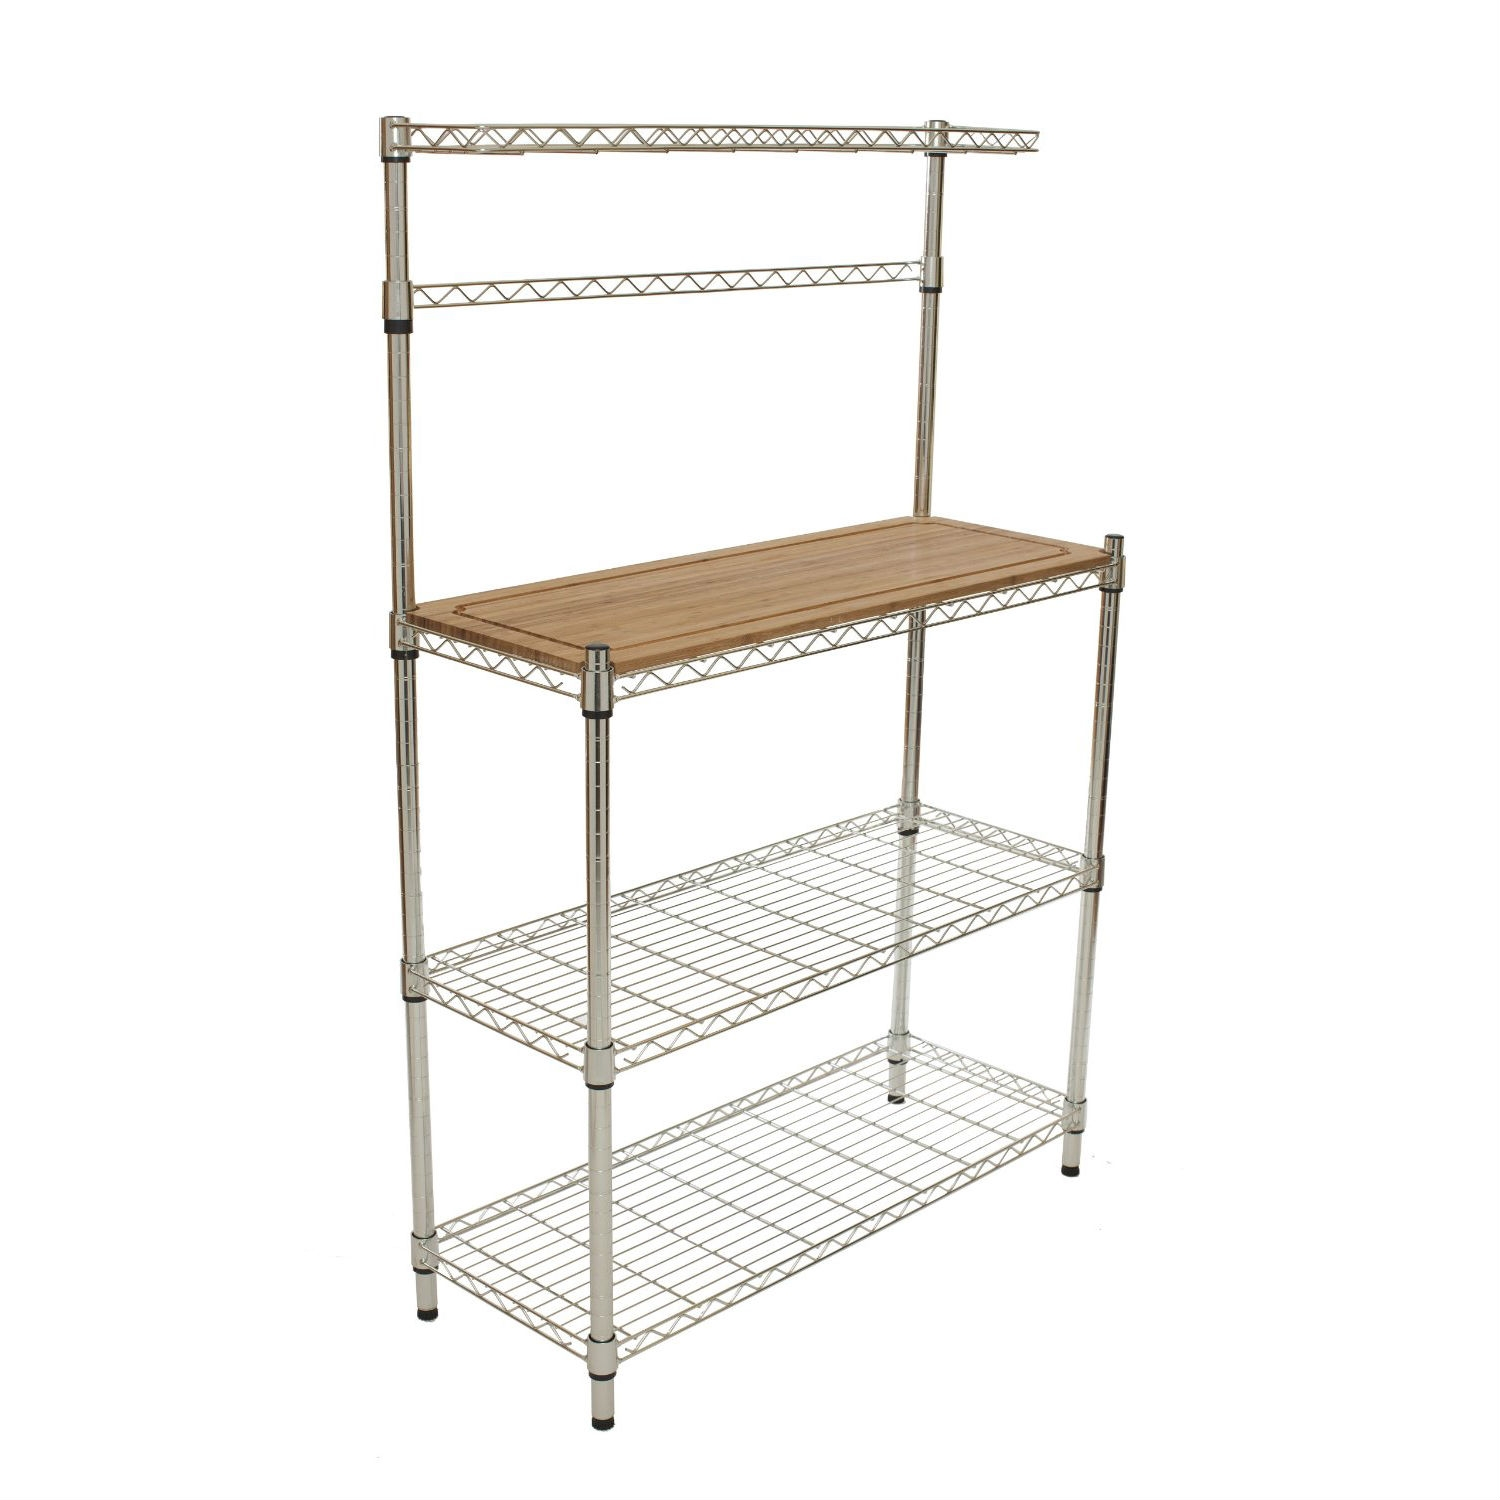 Hanging Bakers Rack Kitchen Metal Bakers Rack With Hanging Bar And Bamboo Cutting Board